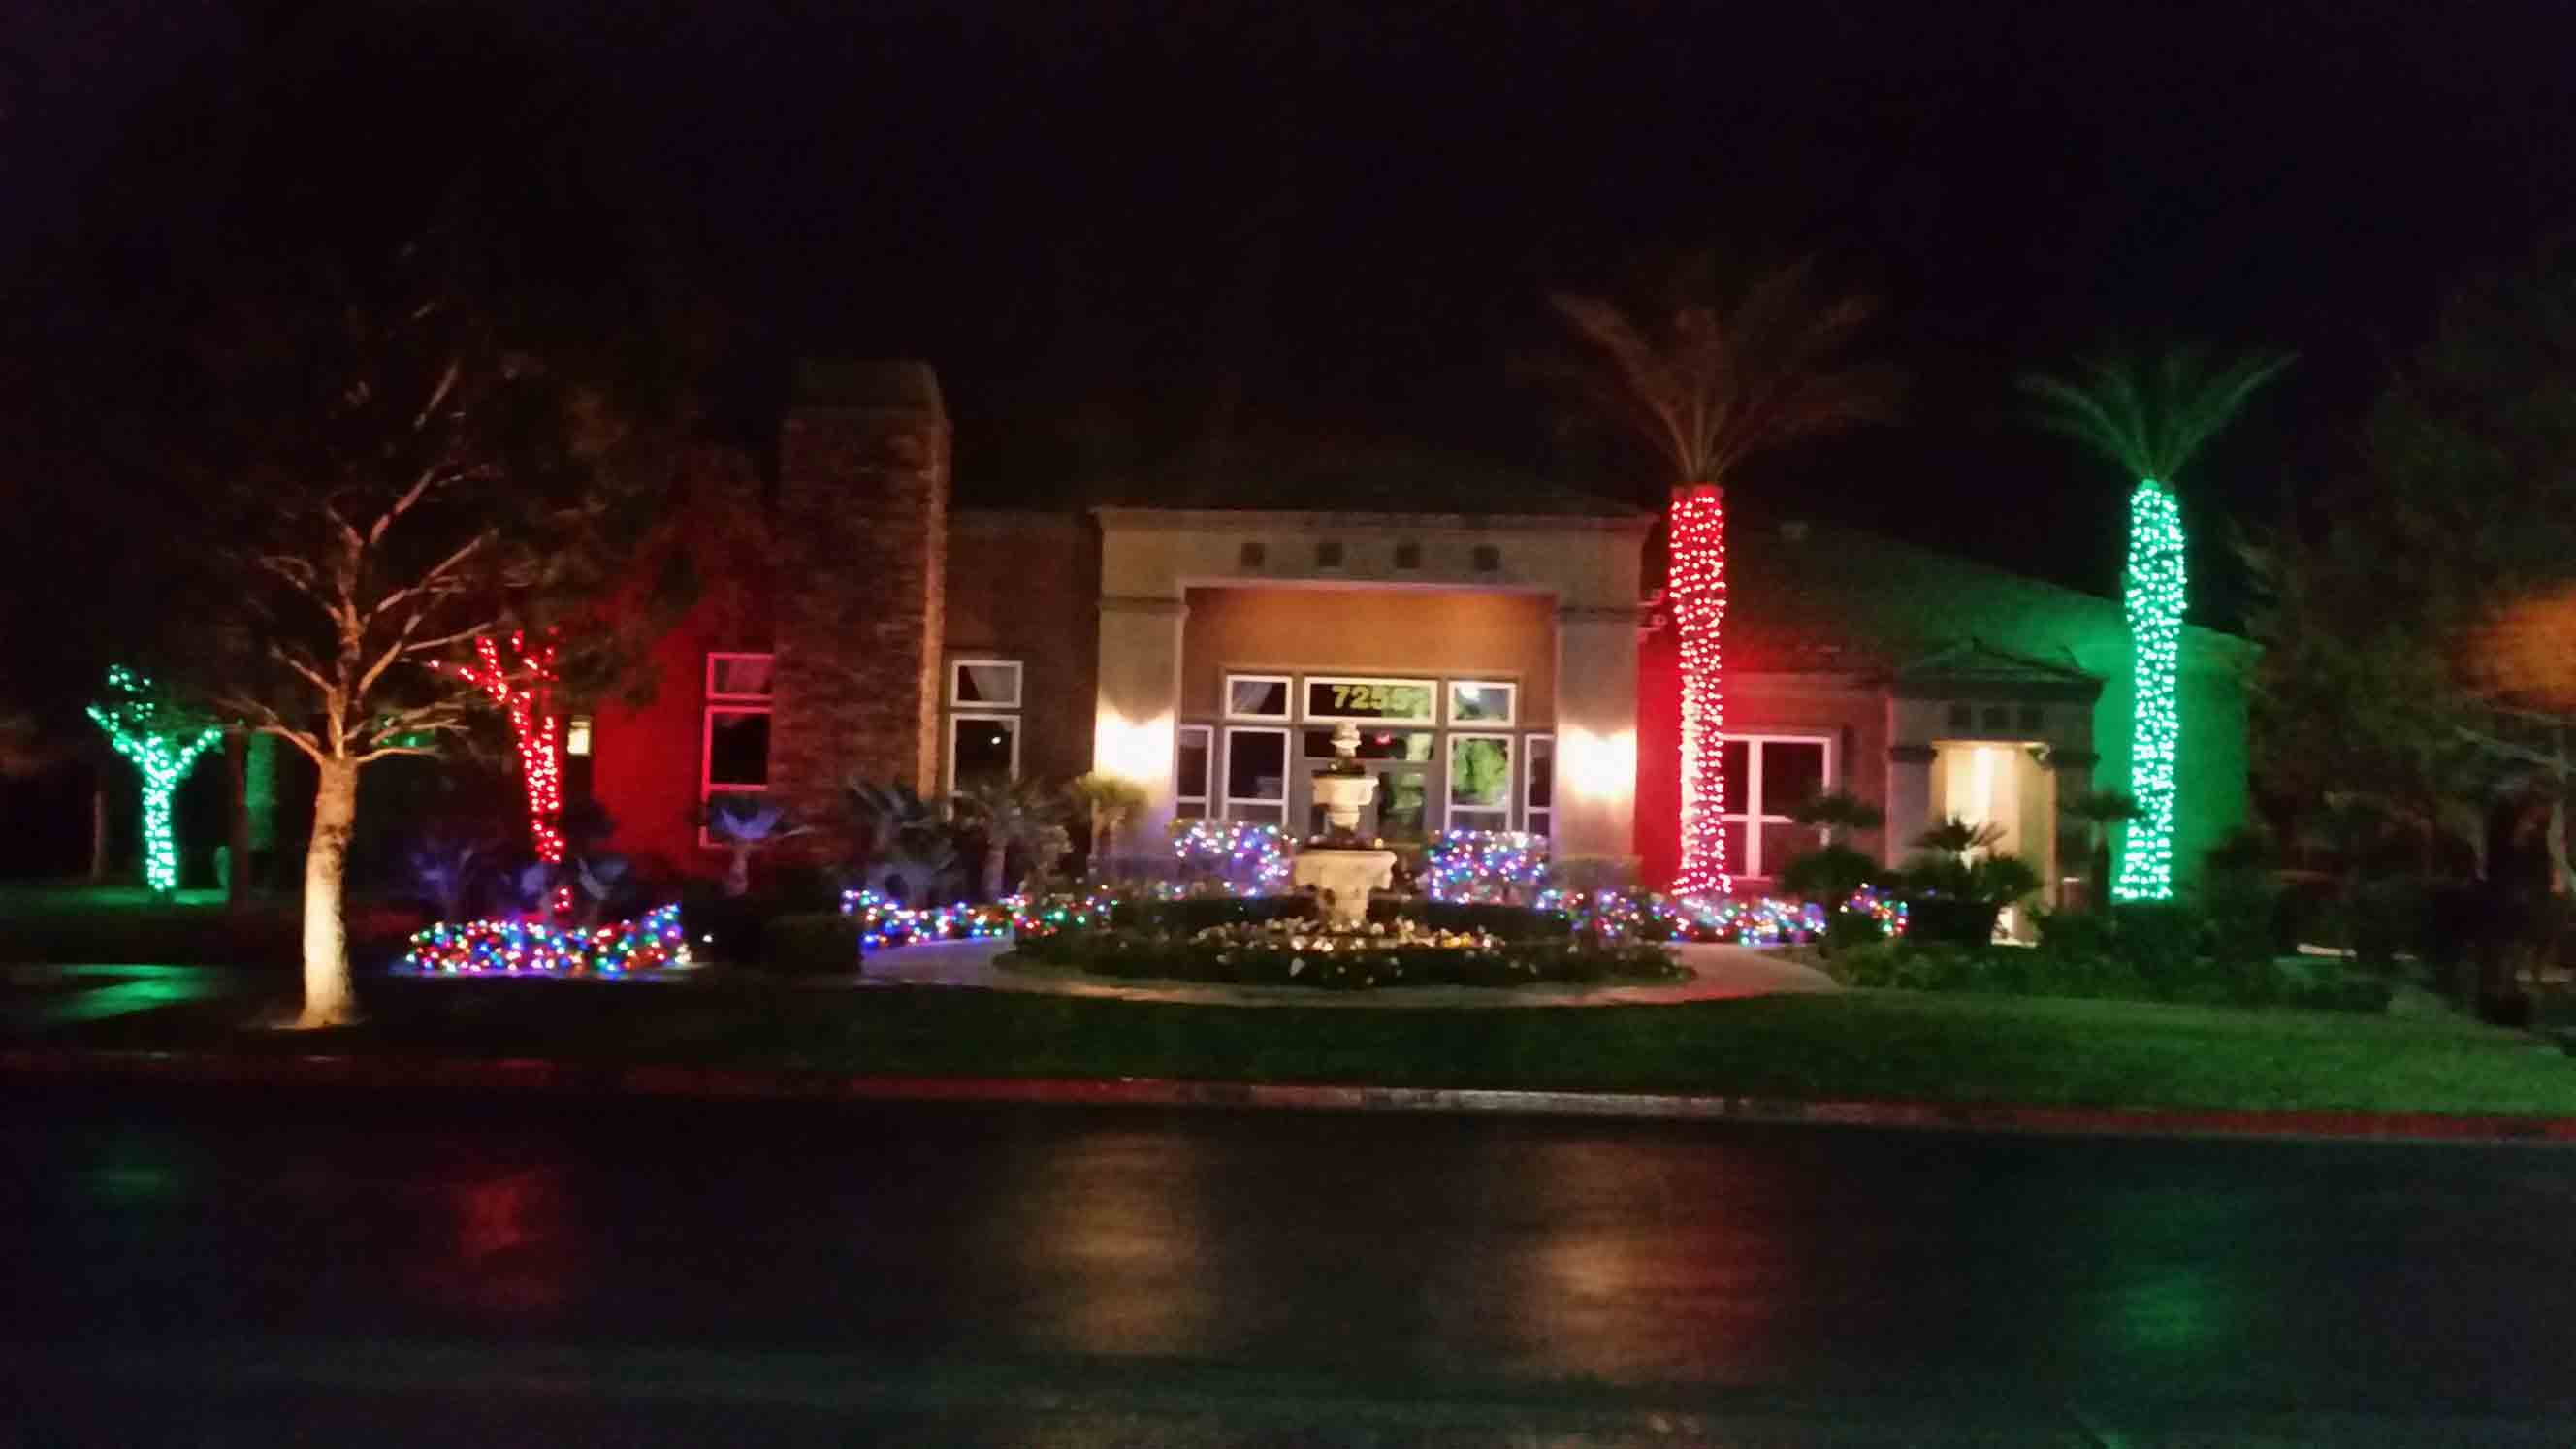 Commercial Christmas lighting by Holiday Decorations in Las Vegas